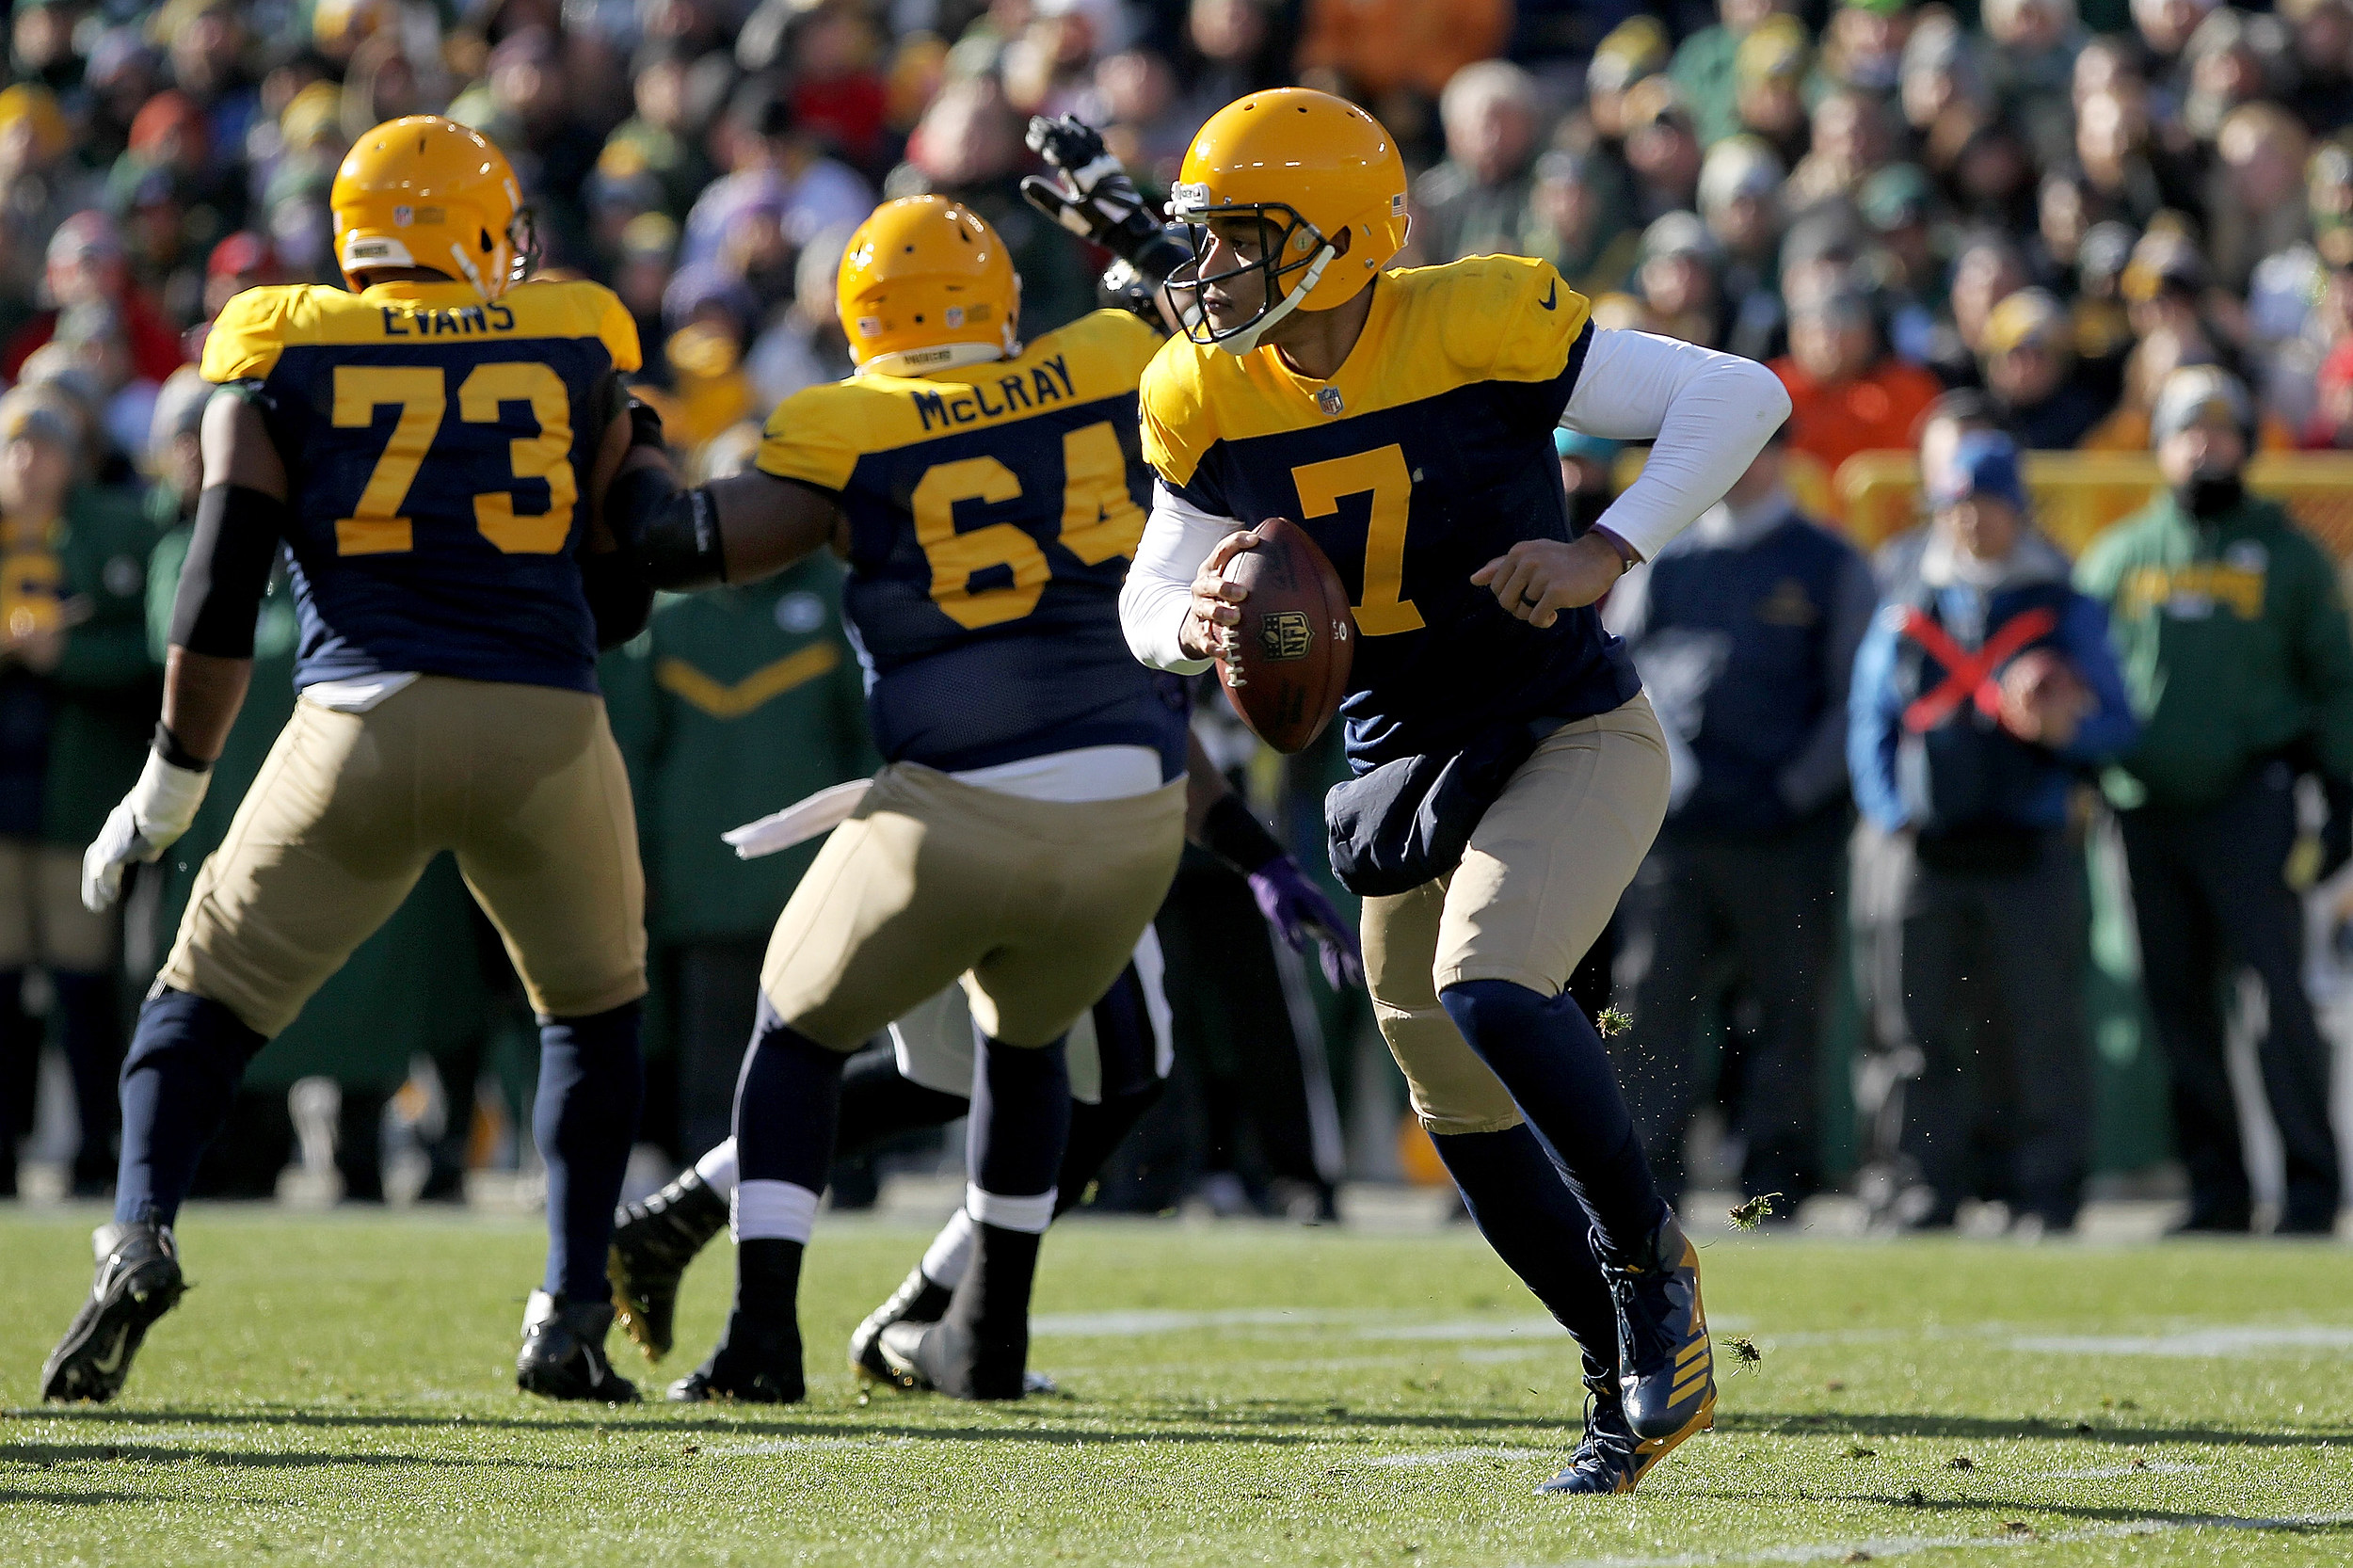 Green Bay Packers Alternate Uniform Ranked Worst In NFL a431b42cf